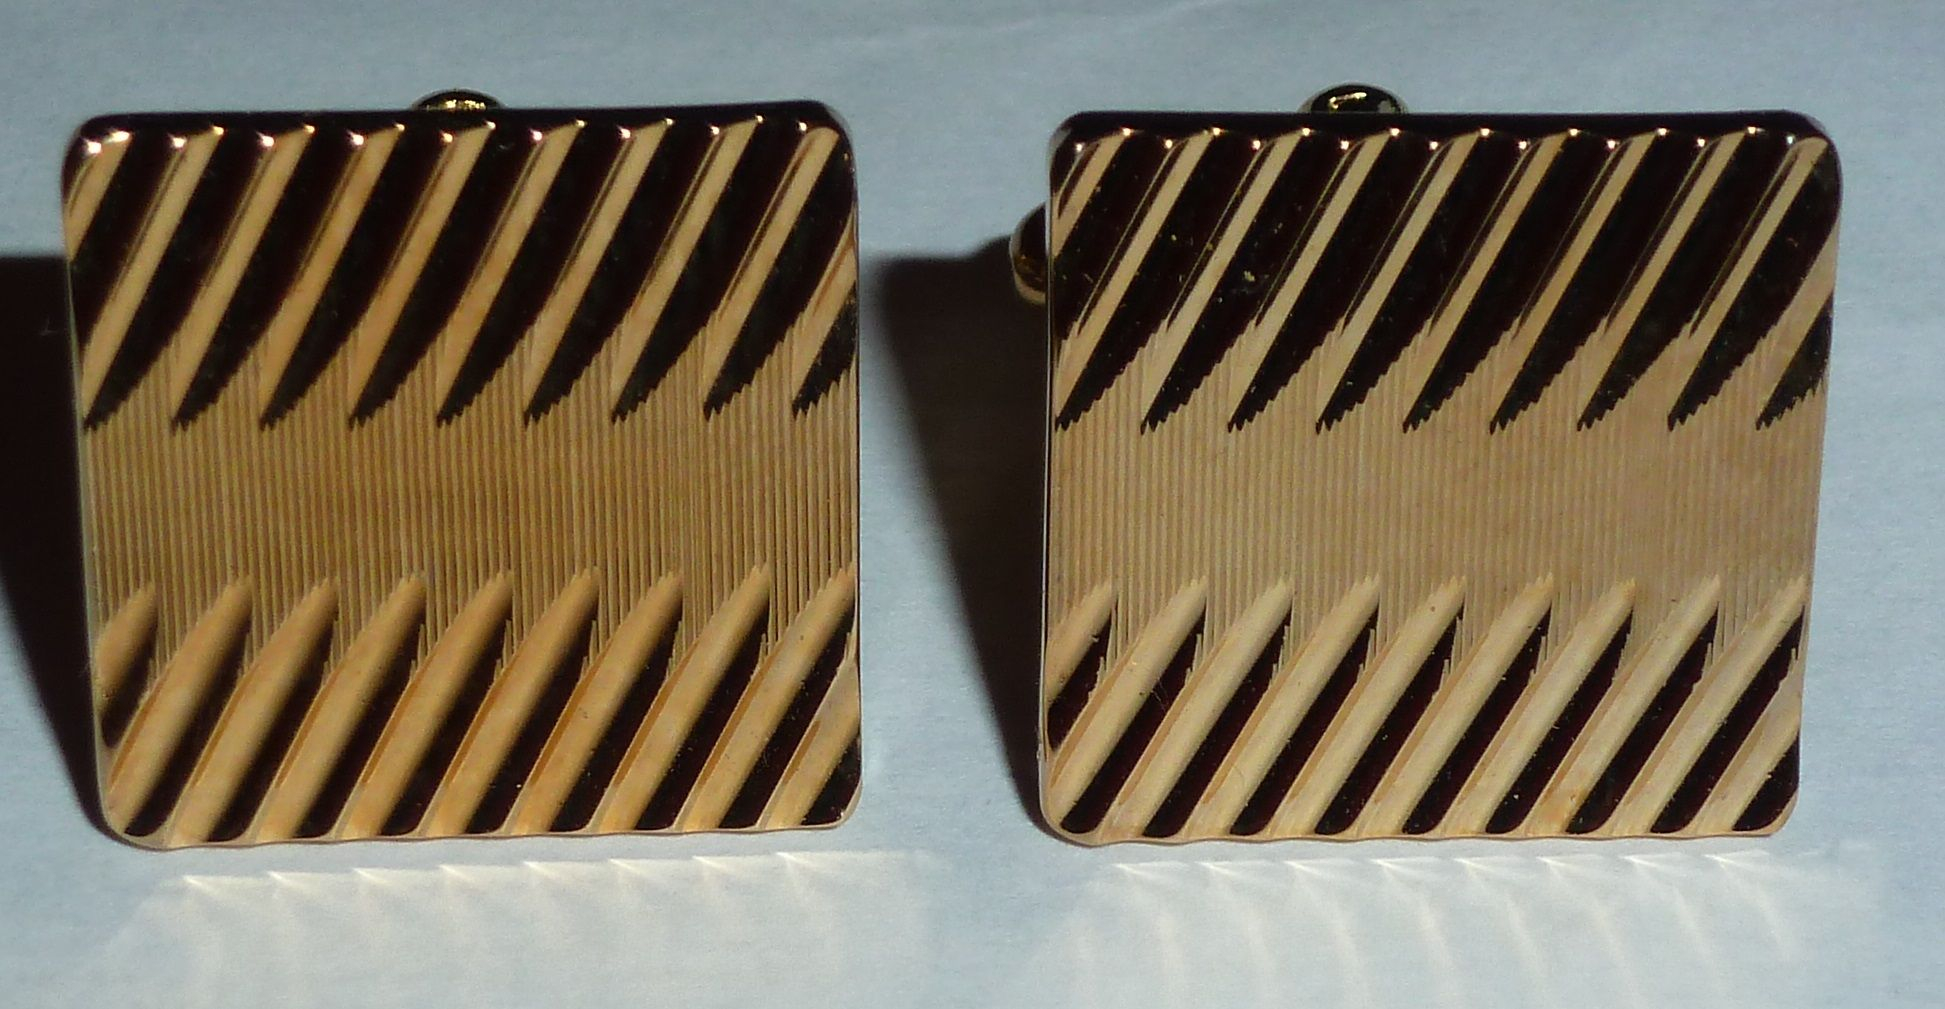 Diagonal diamond cut gold vintage cufflinks stand out from the